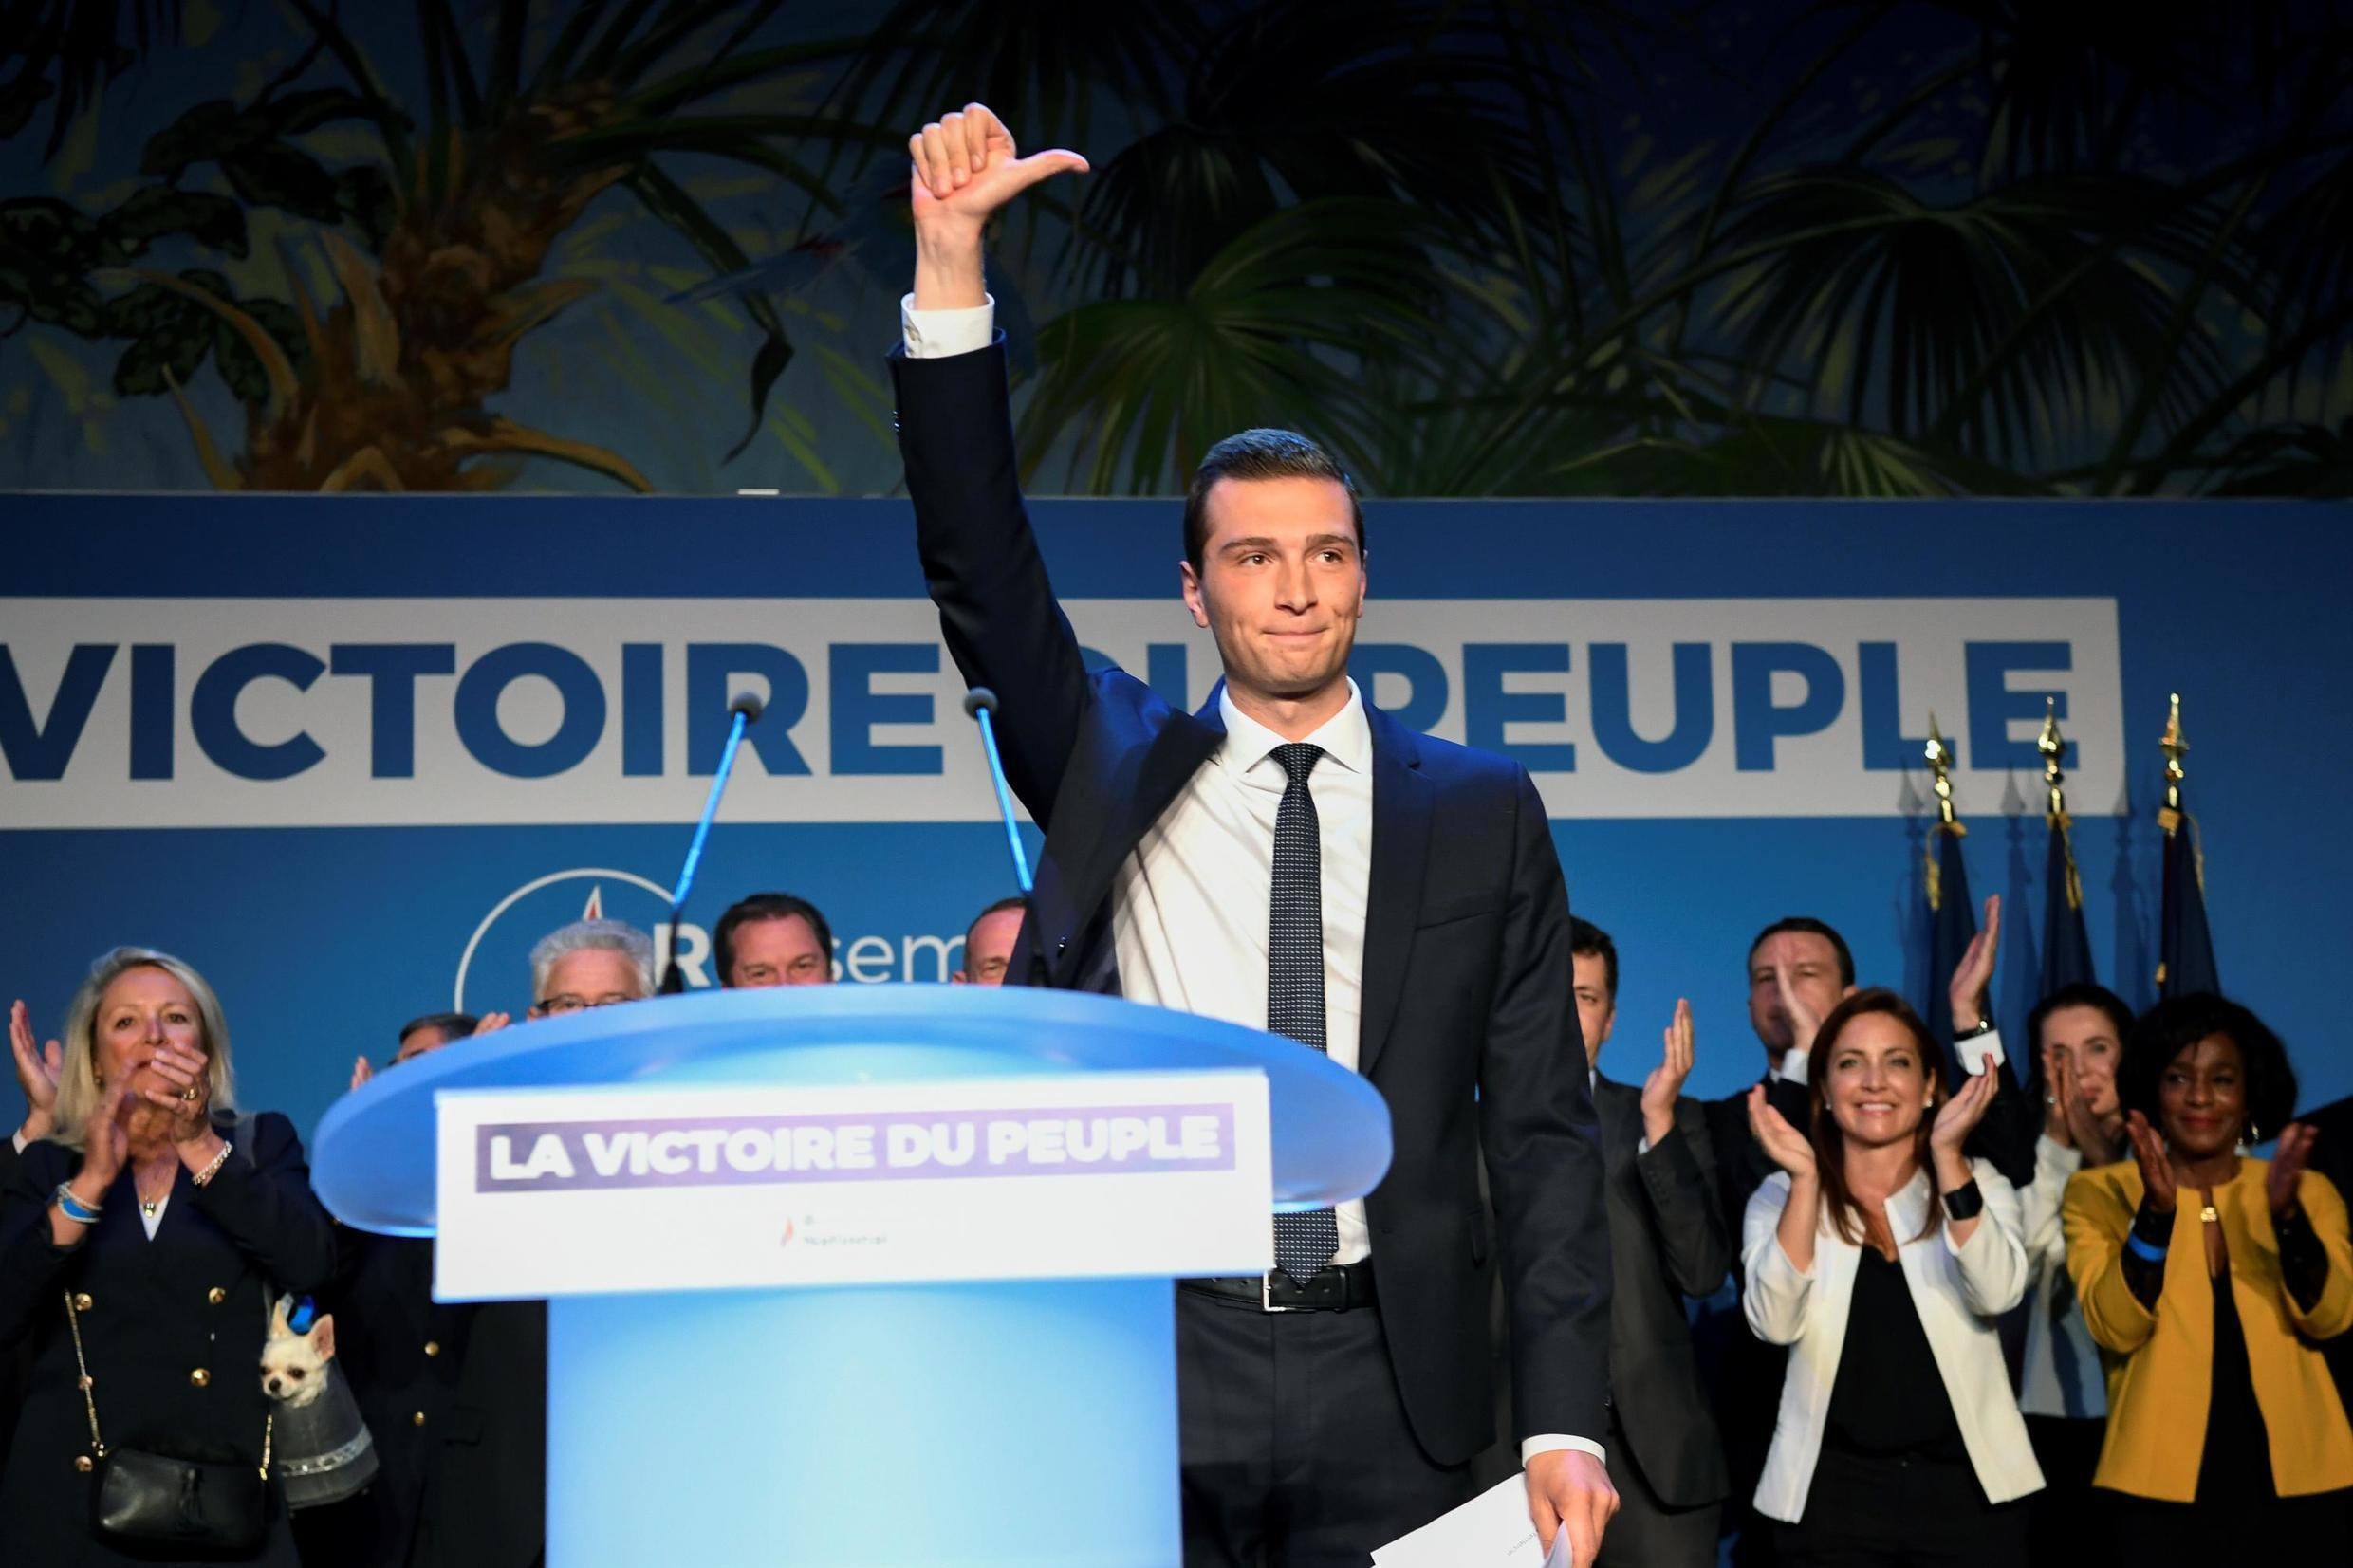 Jordan Bardella, lead candidate for Marine Le Pen's National Rally in the 2019 European elections, celebrates victory at party headquarters on 26 May 2019, despite the party slightly declining in vote share since 2014.